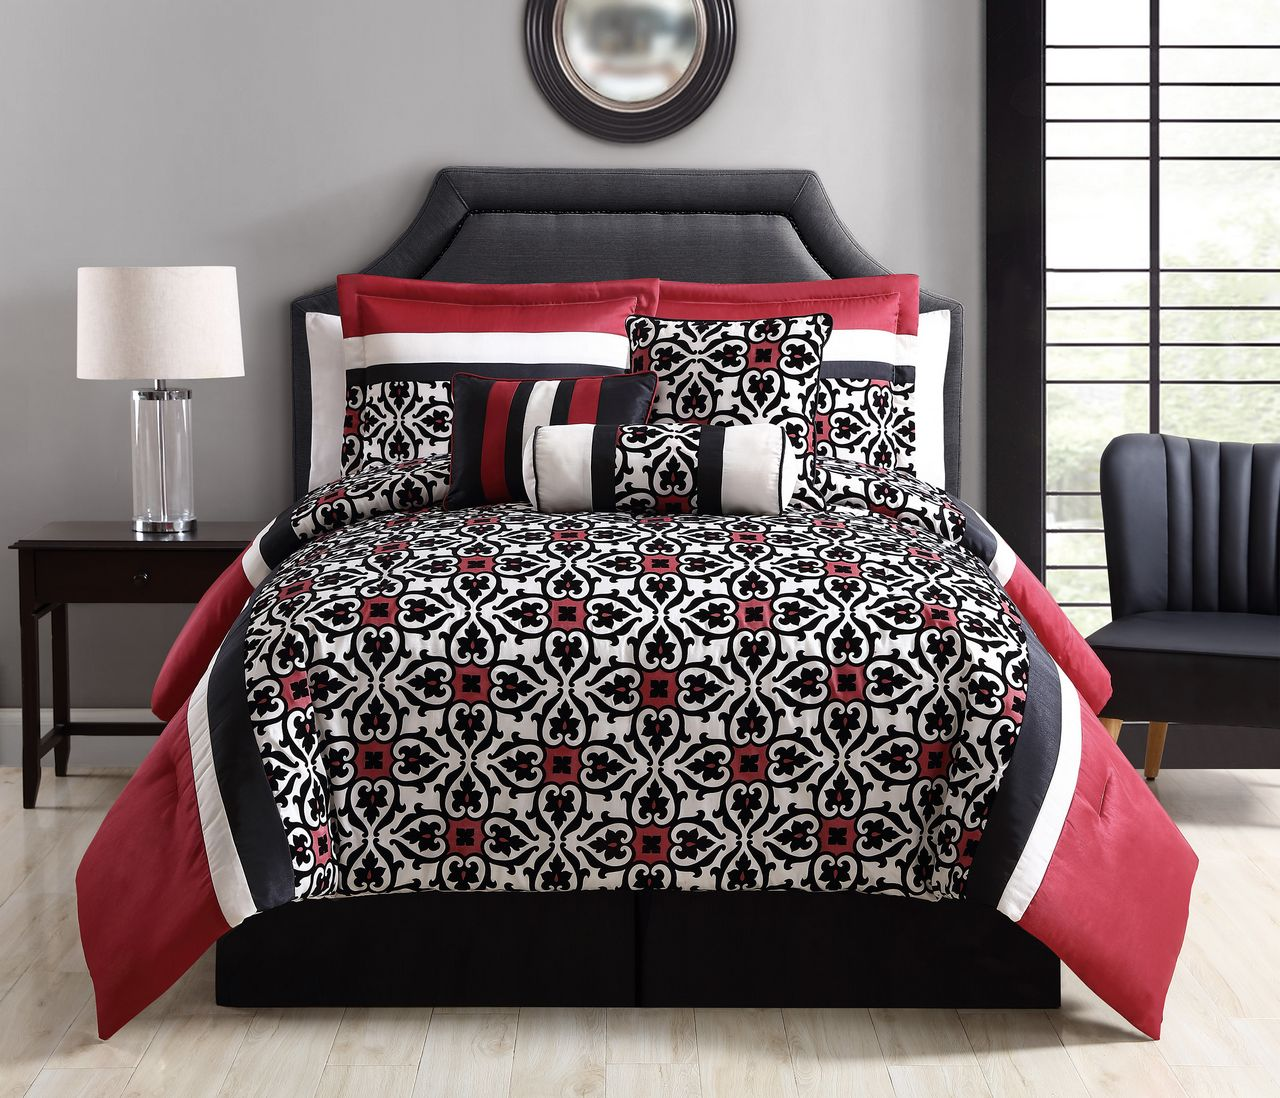 Black and red bedding - Full Size Of Bedding Setsred And Black Bedding Sets Red